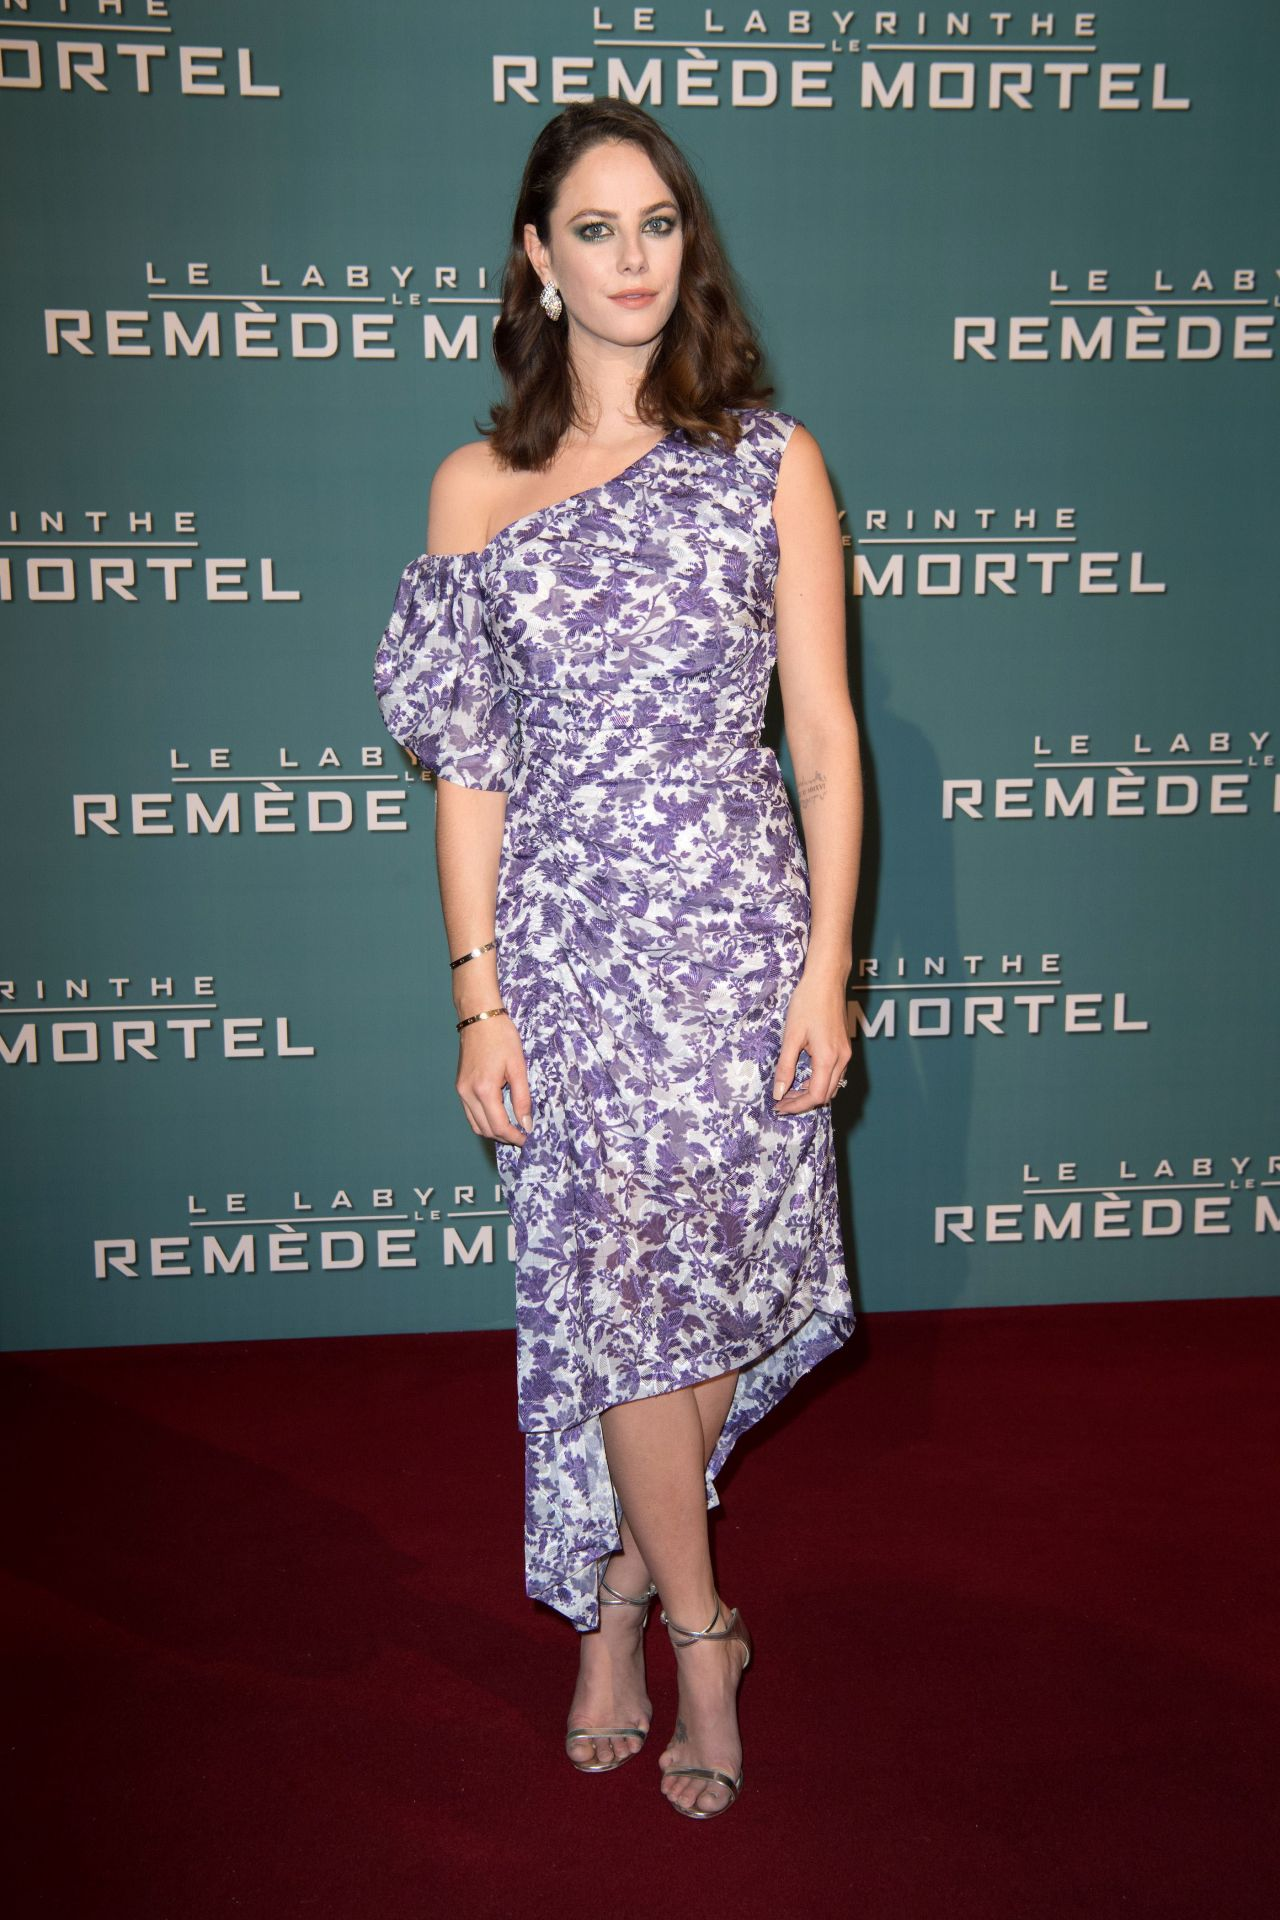 http://celebmafia.com/wp-content/uploads/2018/01/kaya-scodelario-maze-runner-the-death-cure-premiere-in-paris-12.jpg